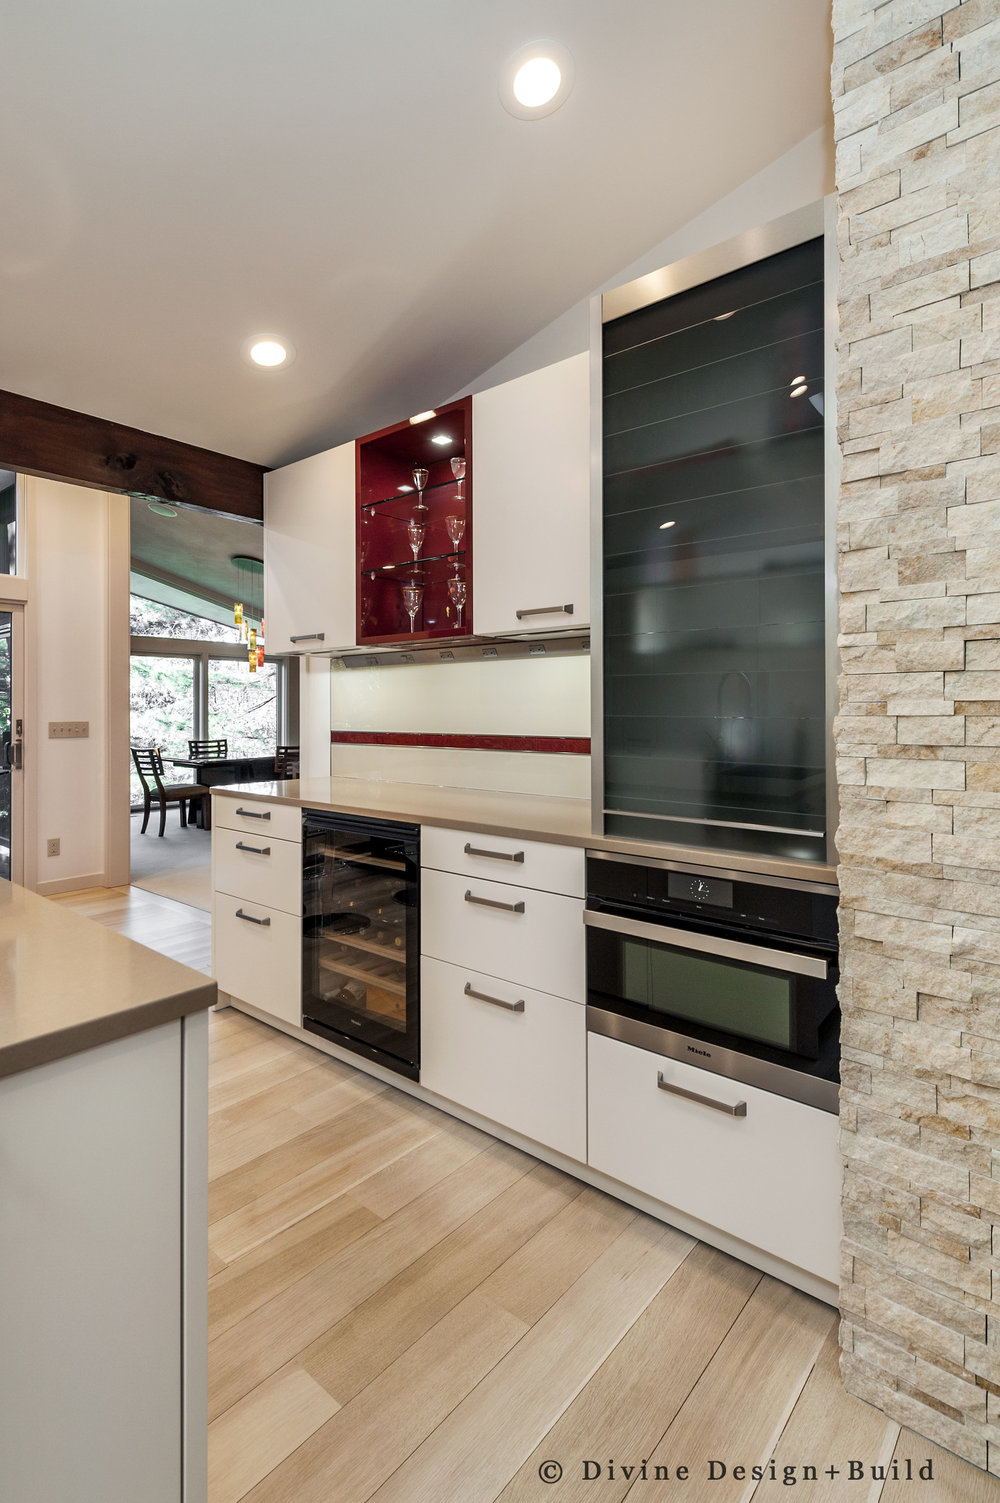 Modern leicht kitchen with mid century modern themes and red detailed accents. Light hardwood floors, and some exposed support beams.